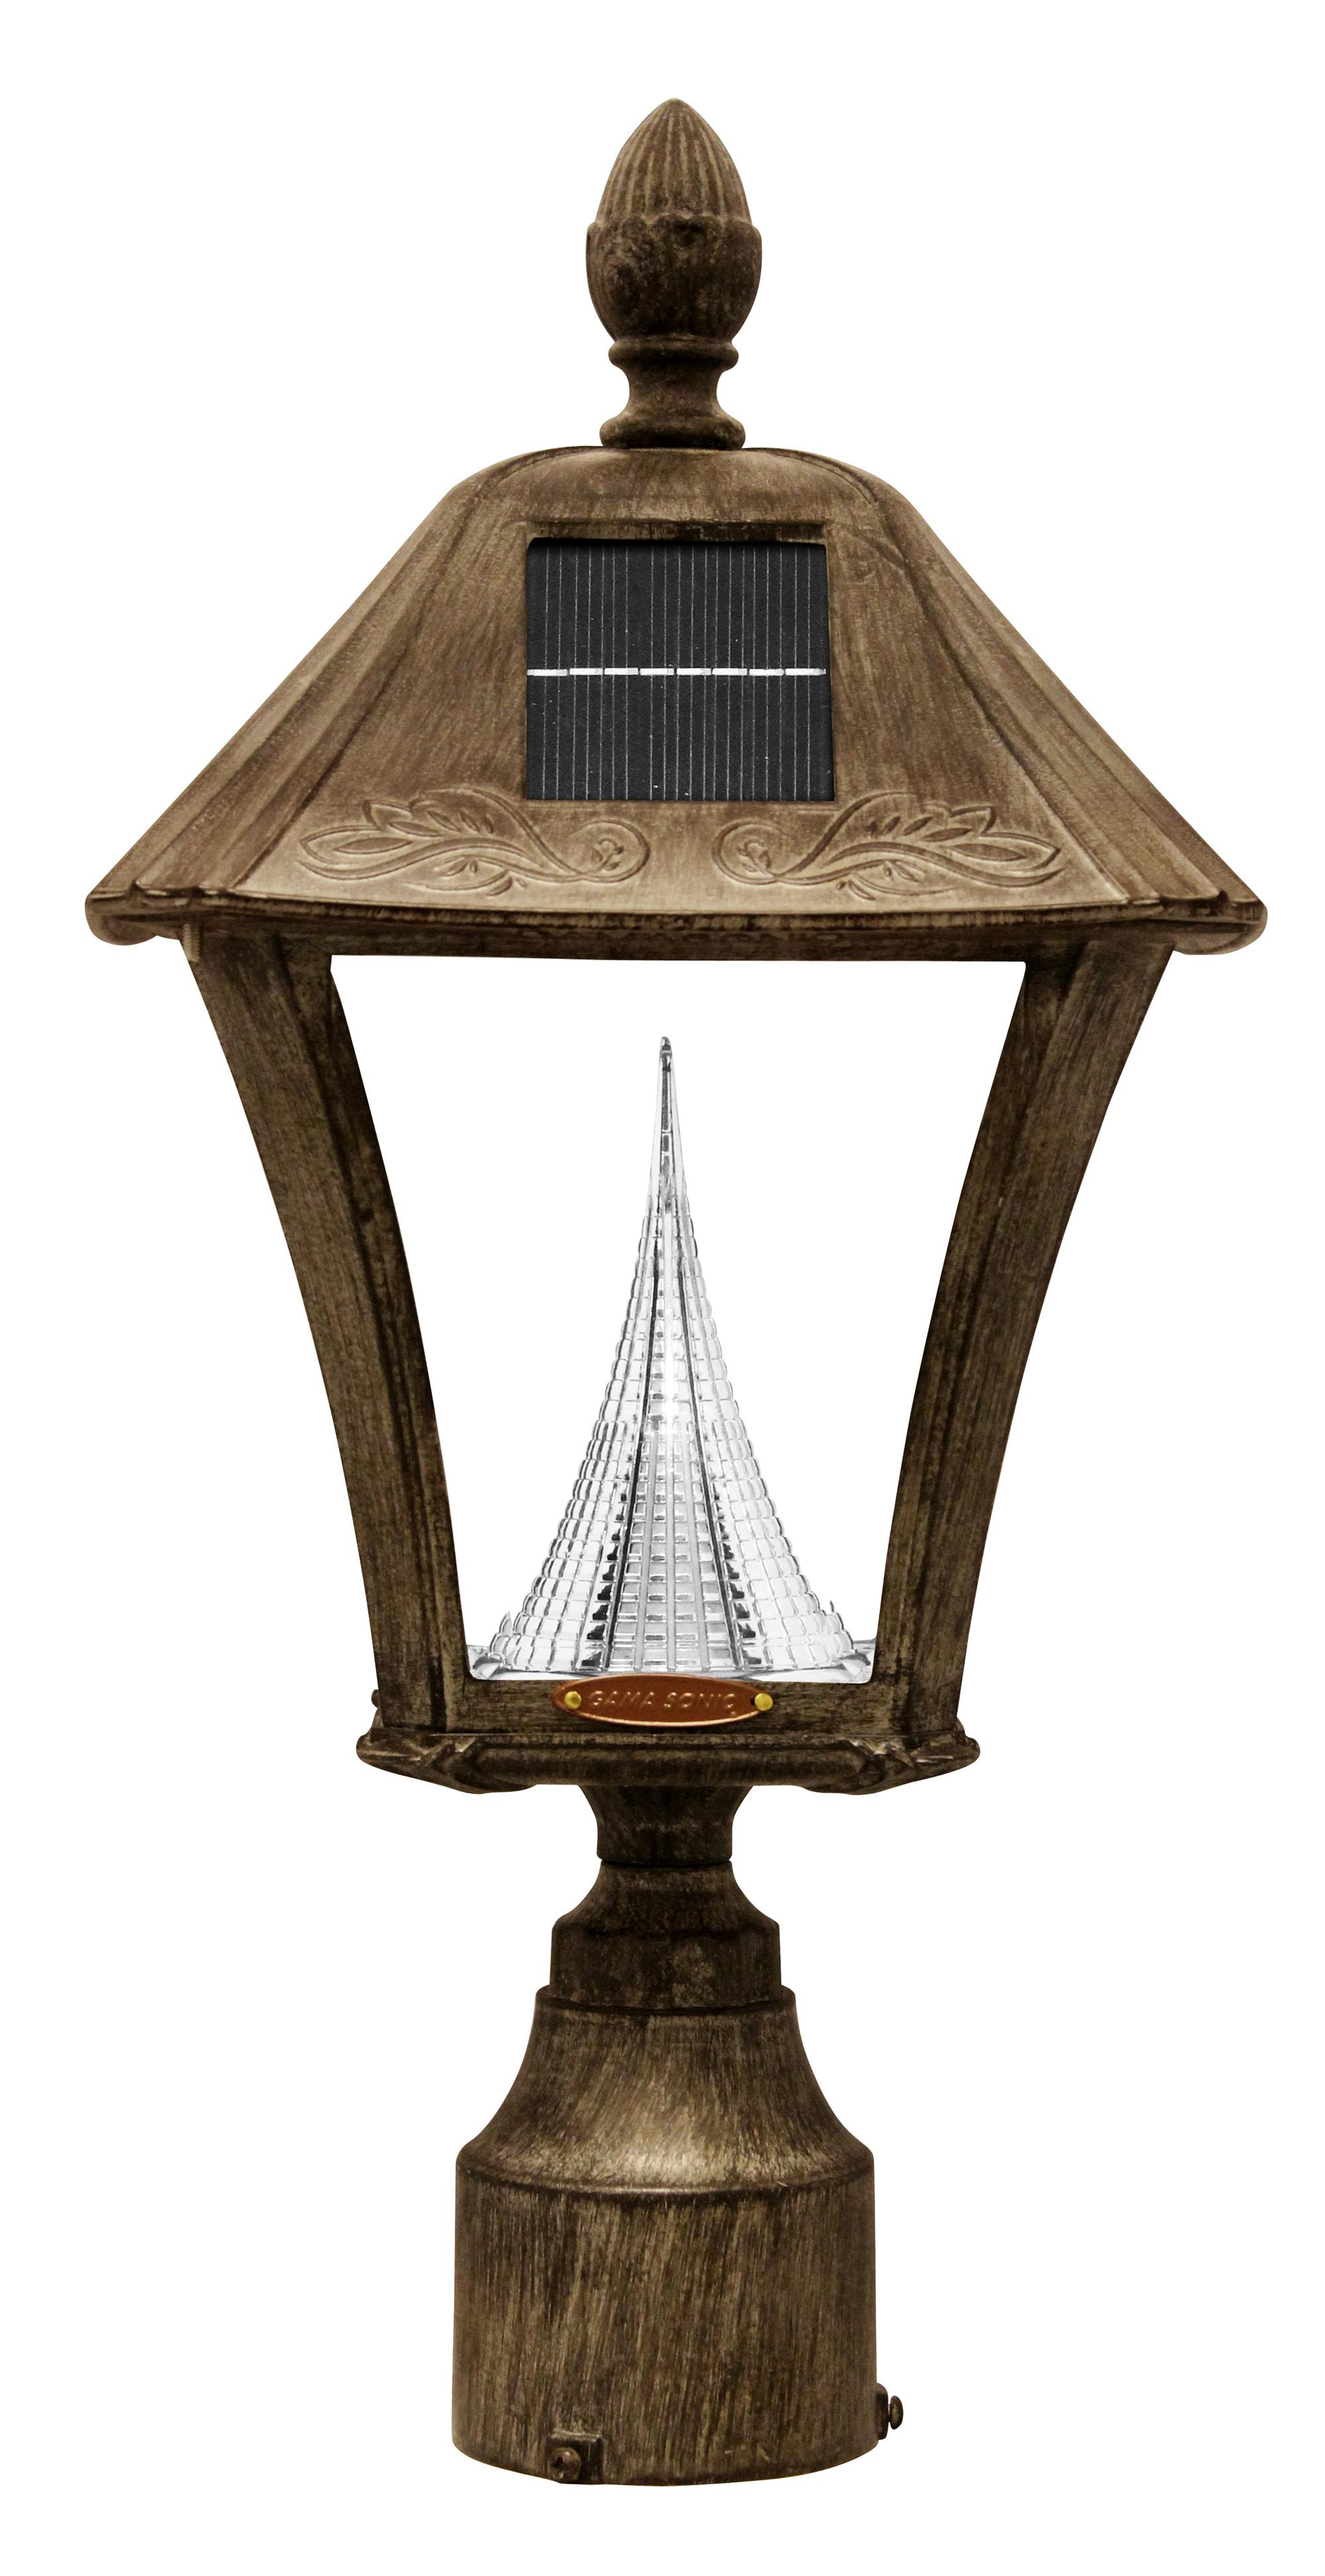 Gama Sonic GS-106FPW Baytown outdoor solar light in weathered bronze